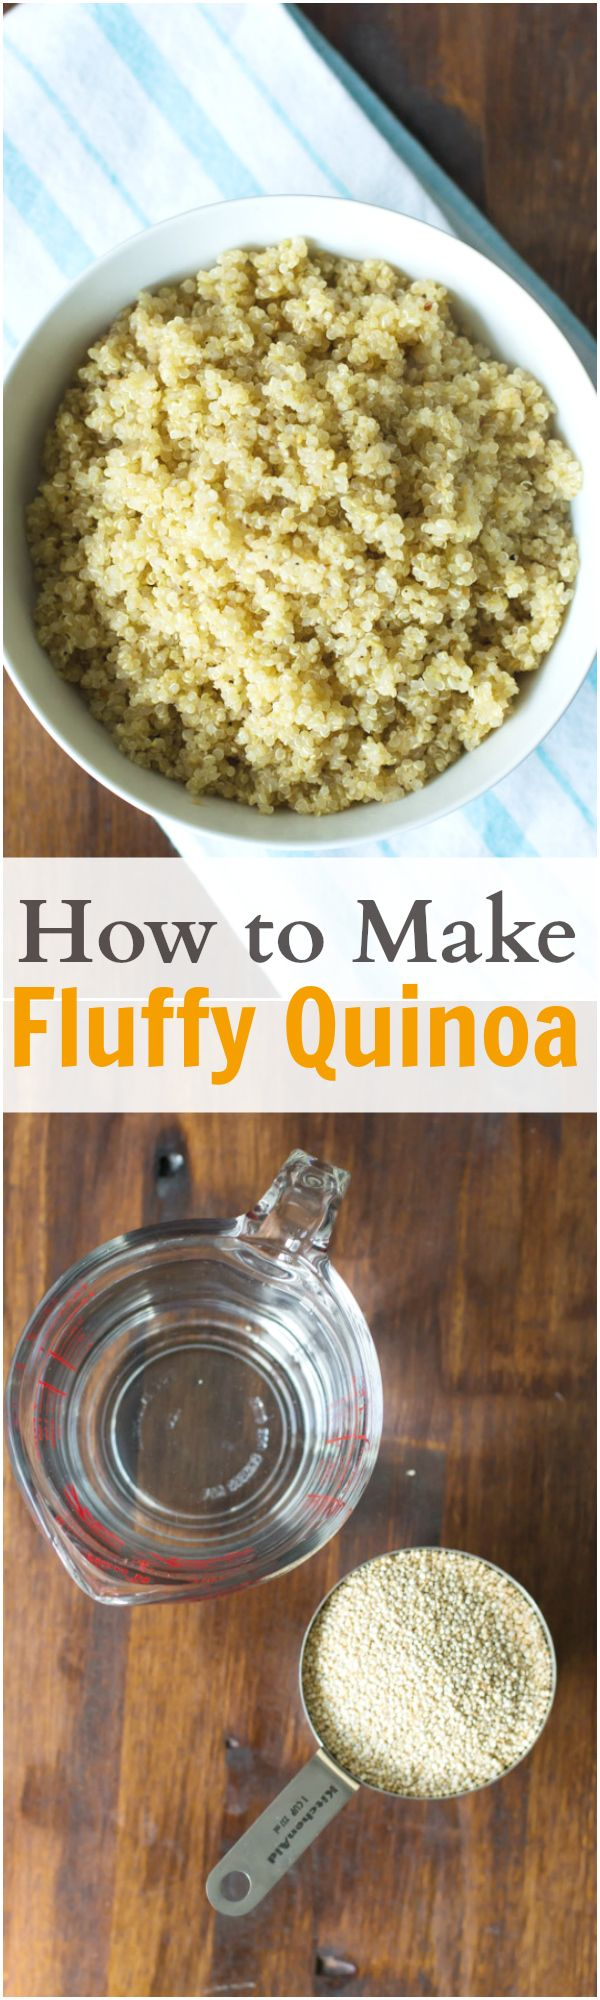 This photo tutorial will show you how to make fluffy quinoa. Making fluffy and delicious quinoa is easier than you think. primaverakitchen.com